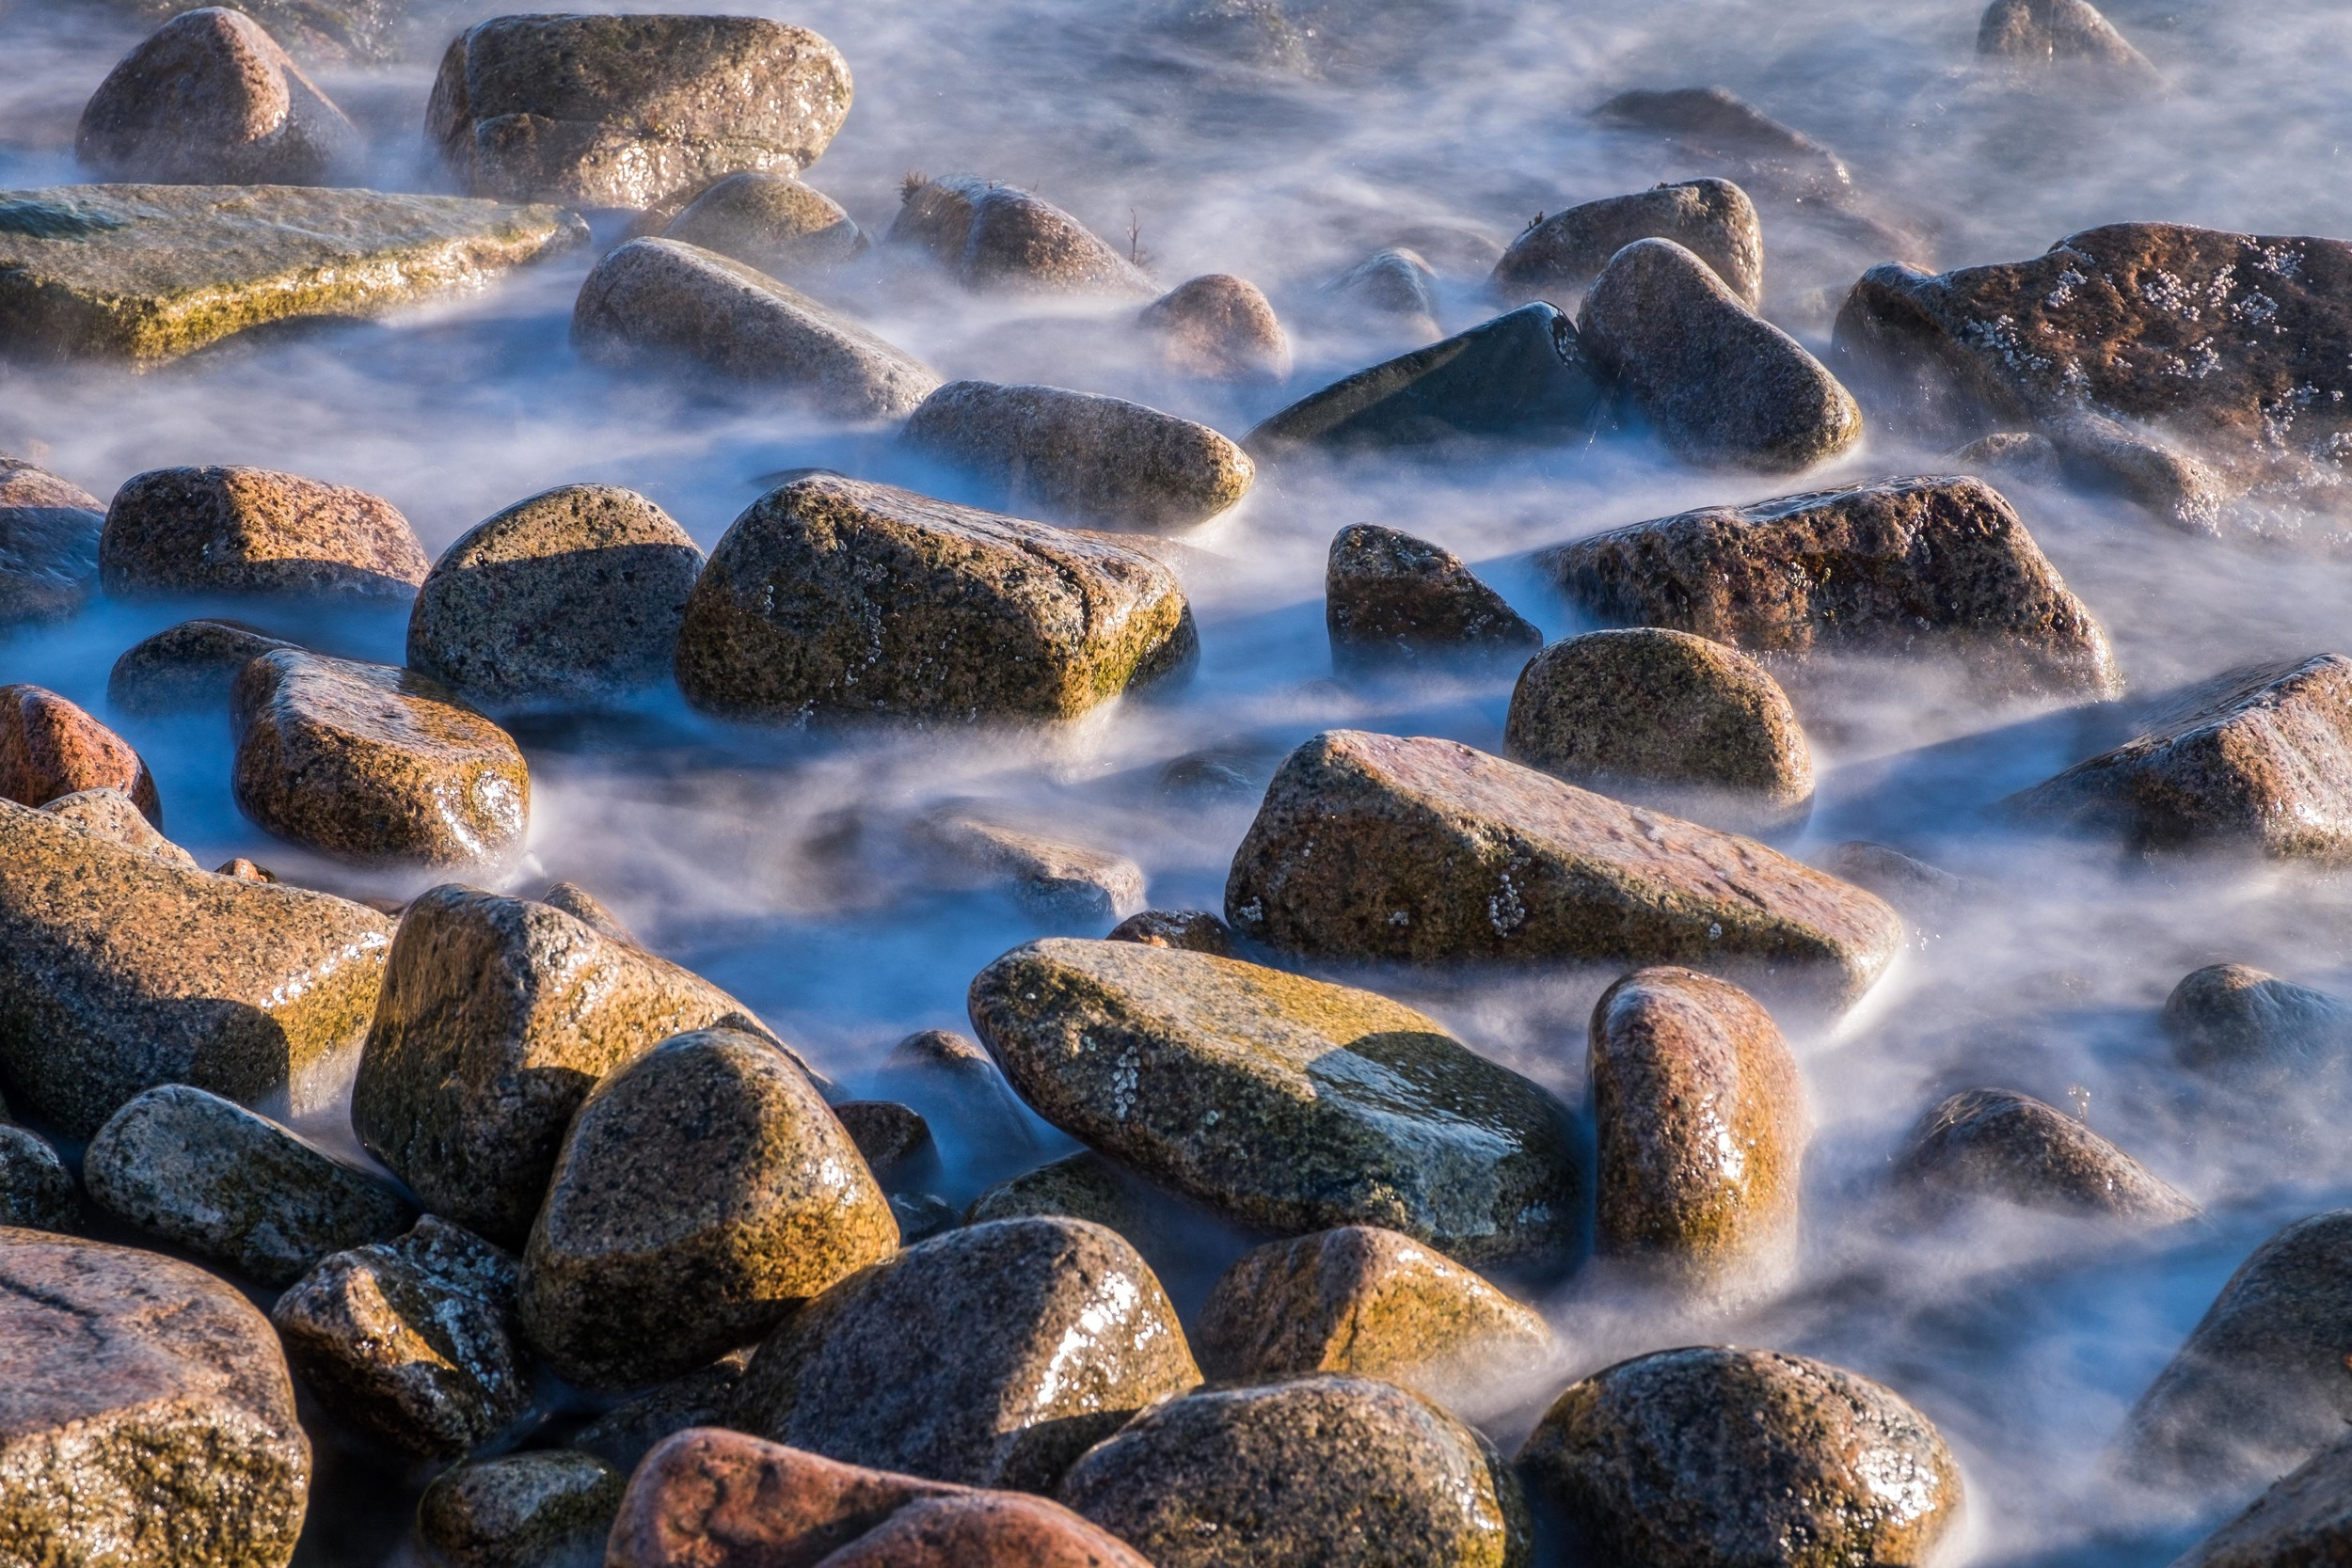 Rocky shores at Acadia National Park in Maine.